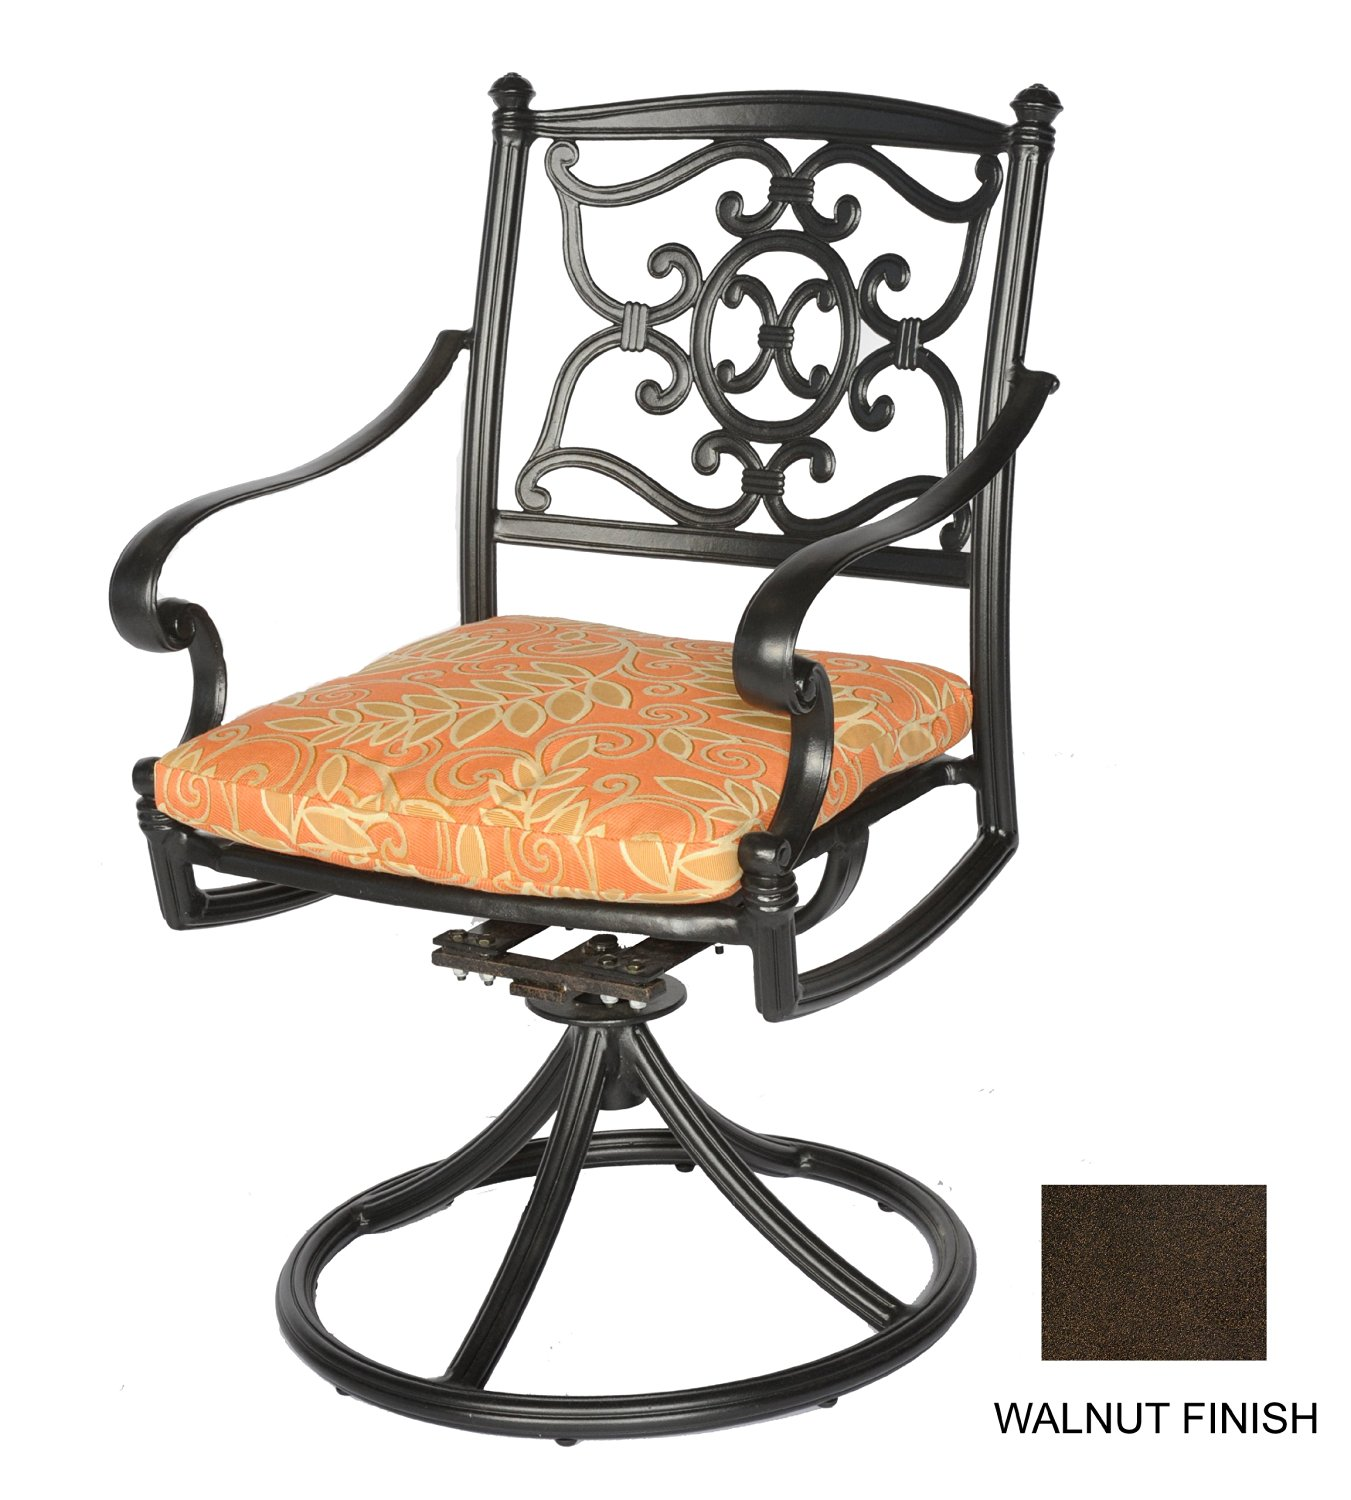 Meadow Decor 2623-58 Kingston Patio Swivel Rocker Chair, Walnut